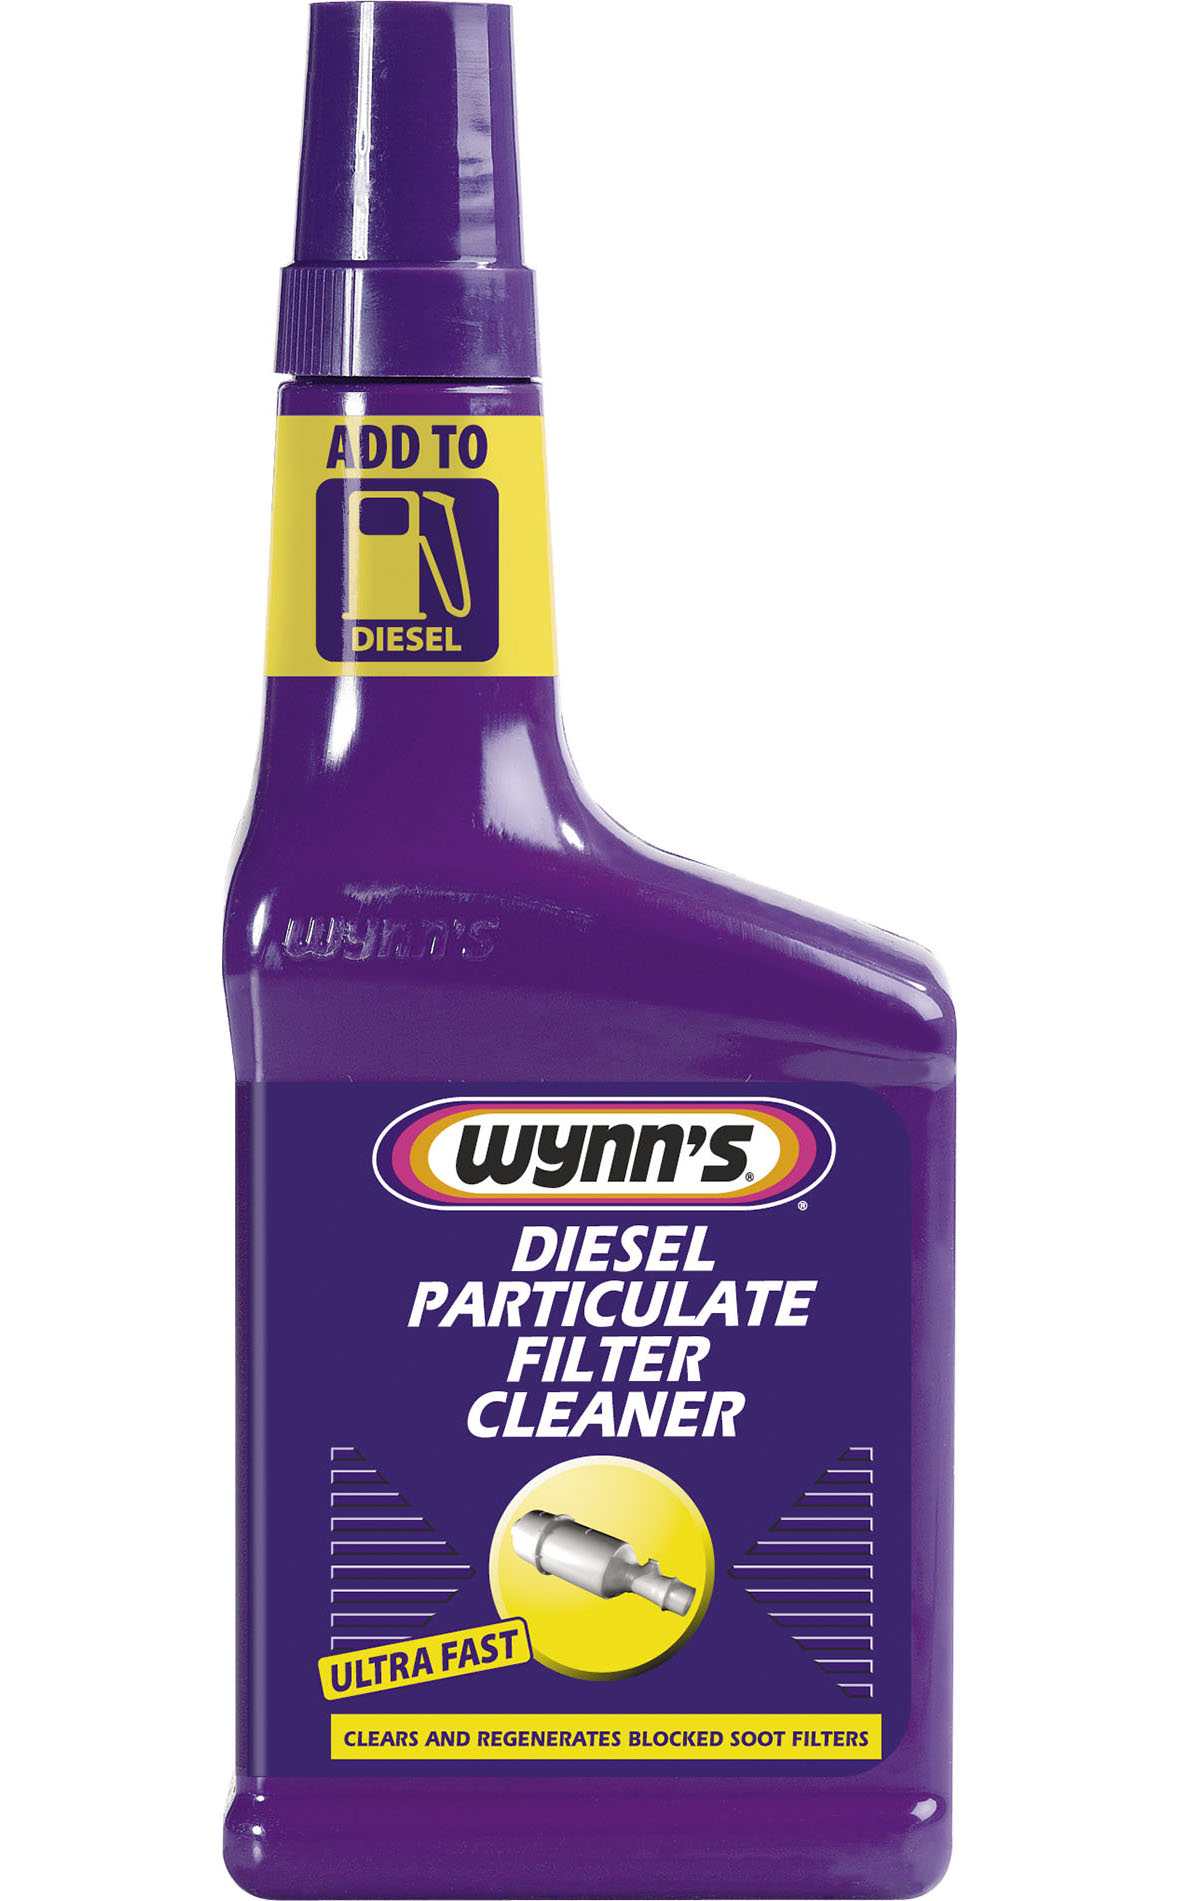 4x wynns professional dpf diesel particulate filter wynns dpf diesel particulate filter regenerator cleaner 262